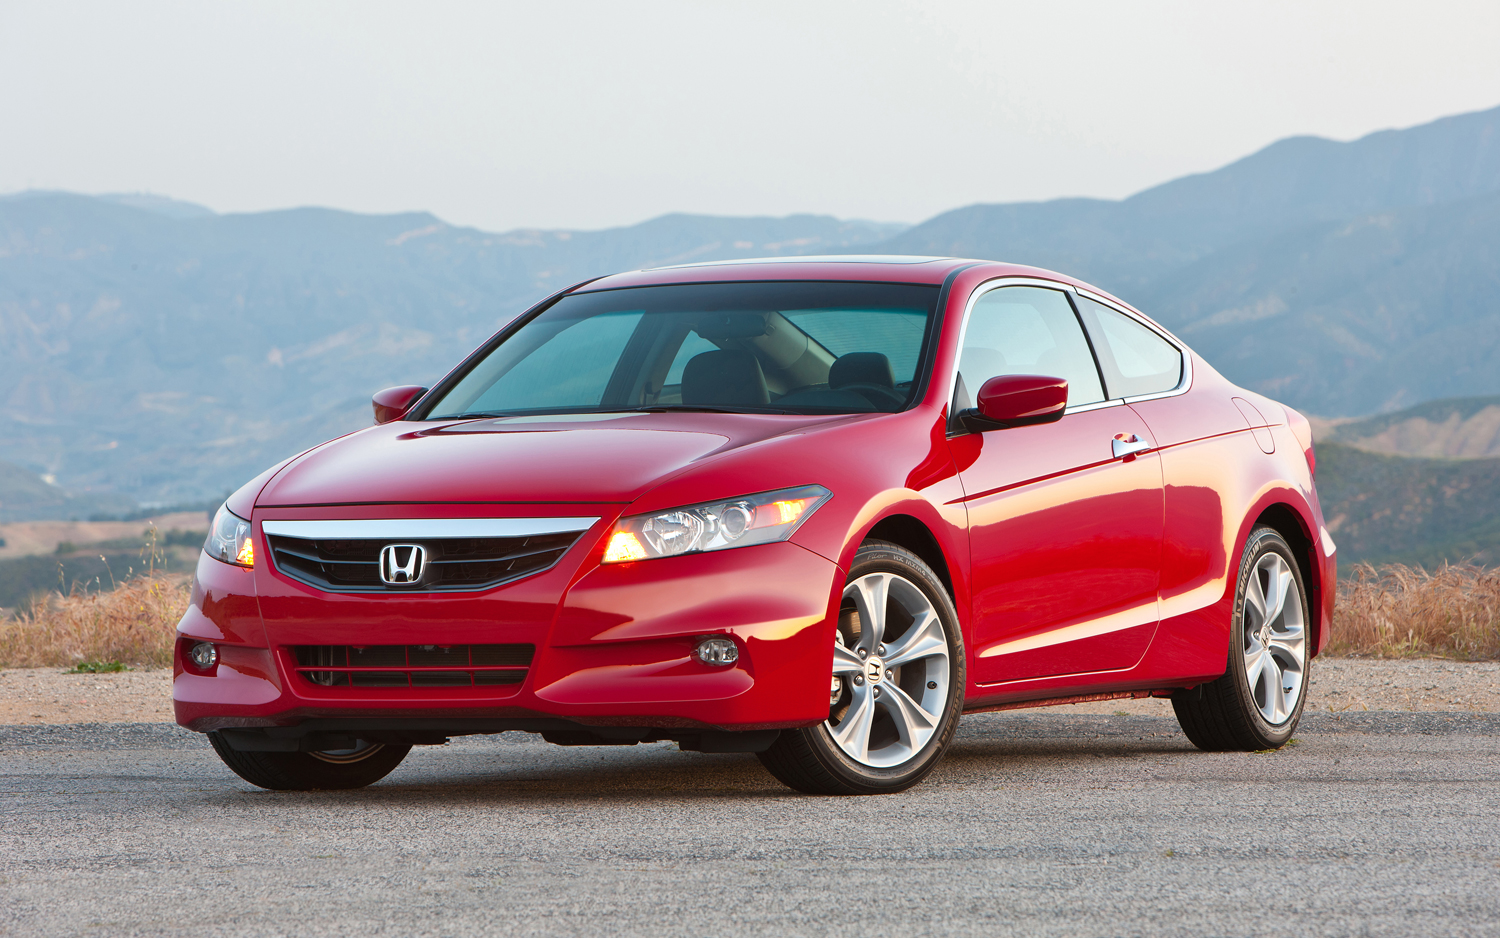 2012 Honda Accord Coupe Photo Gallery